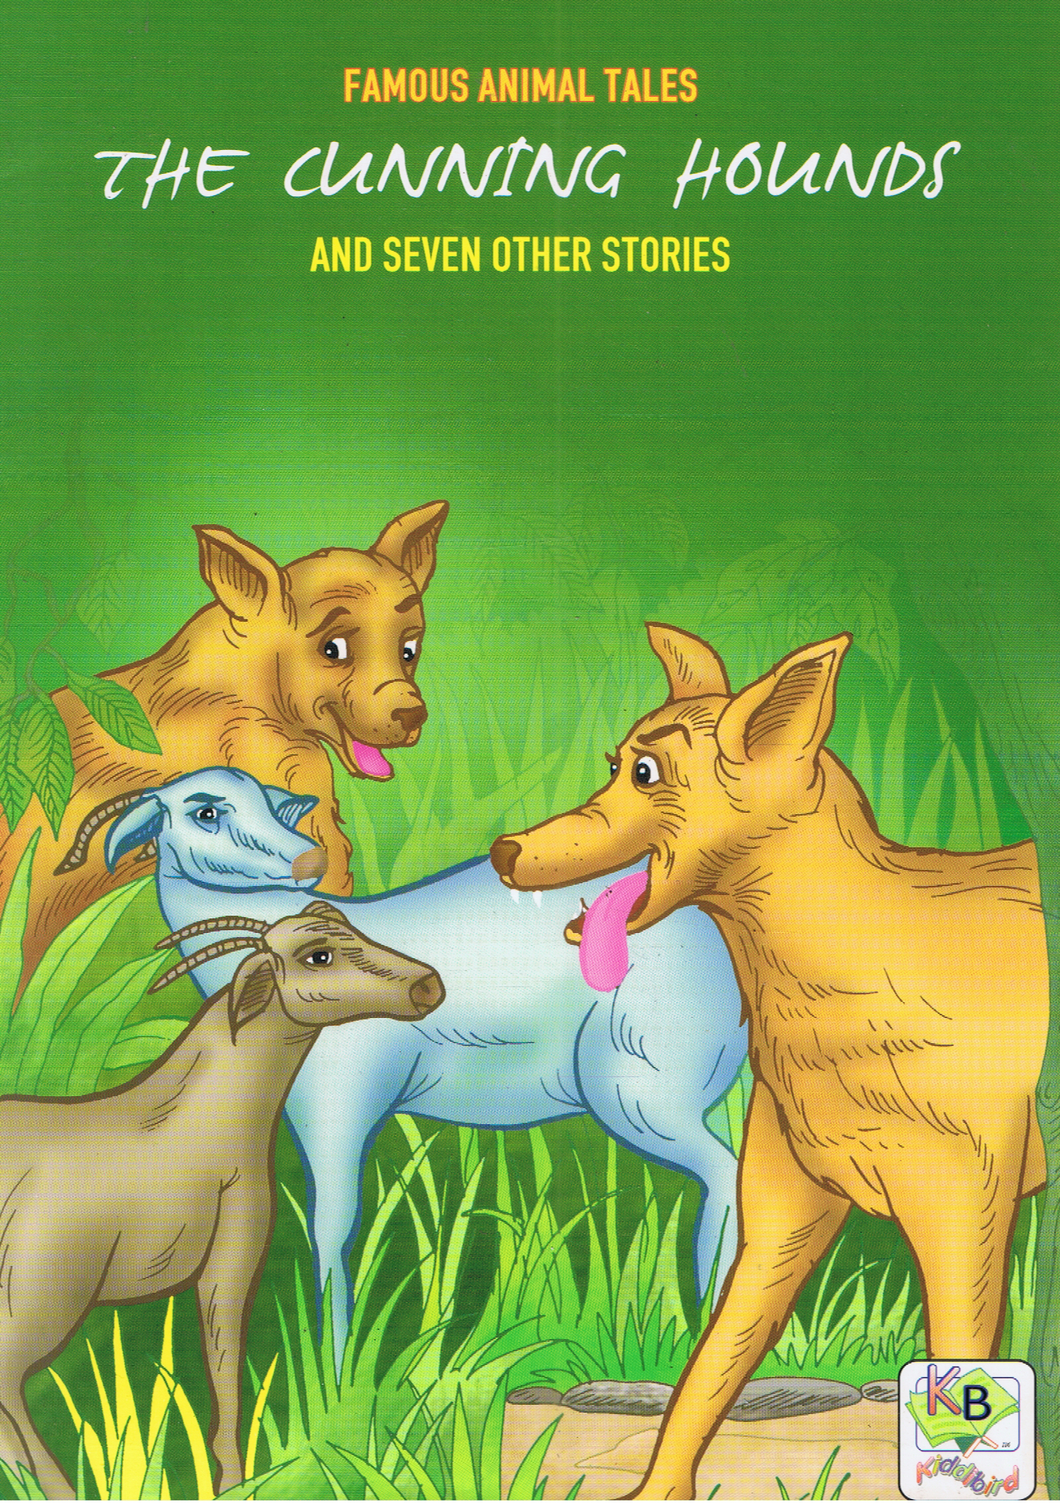 Famous Animal Tales: The Cunning Hounds And Seven Other Stories